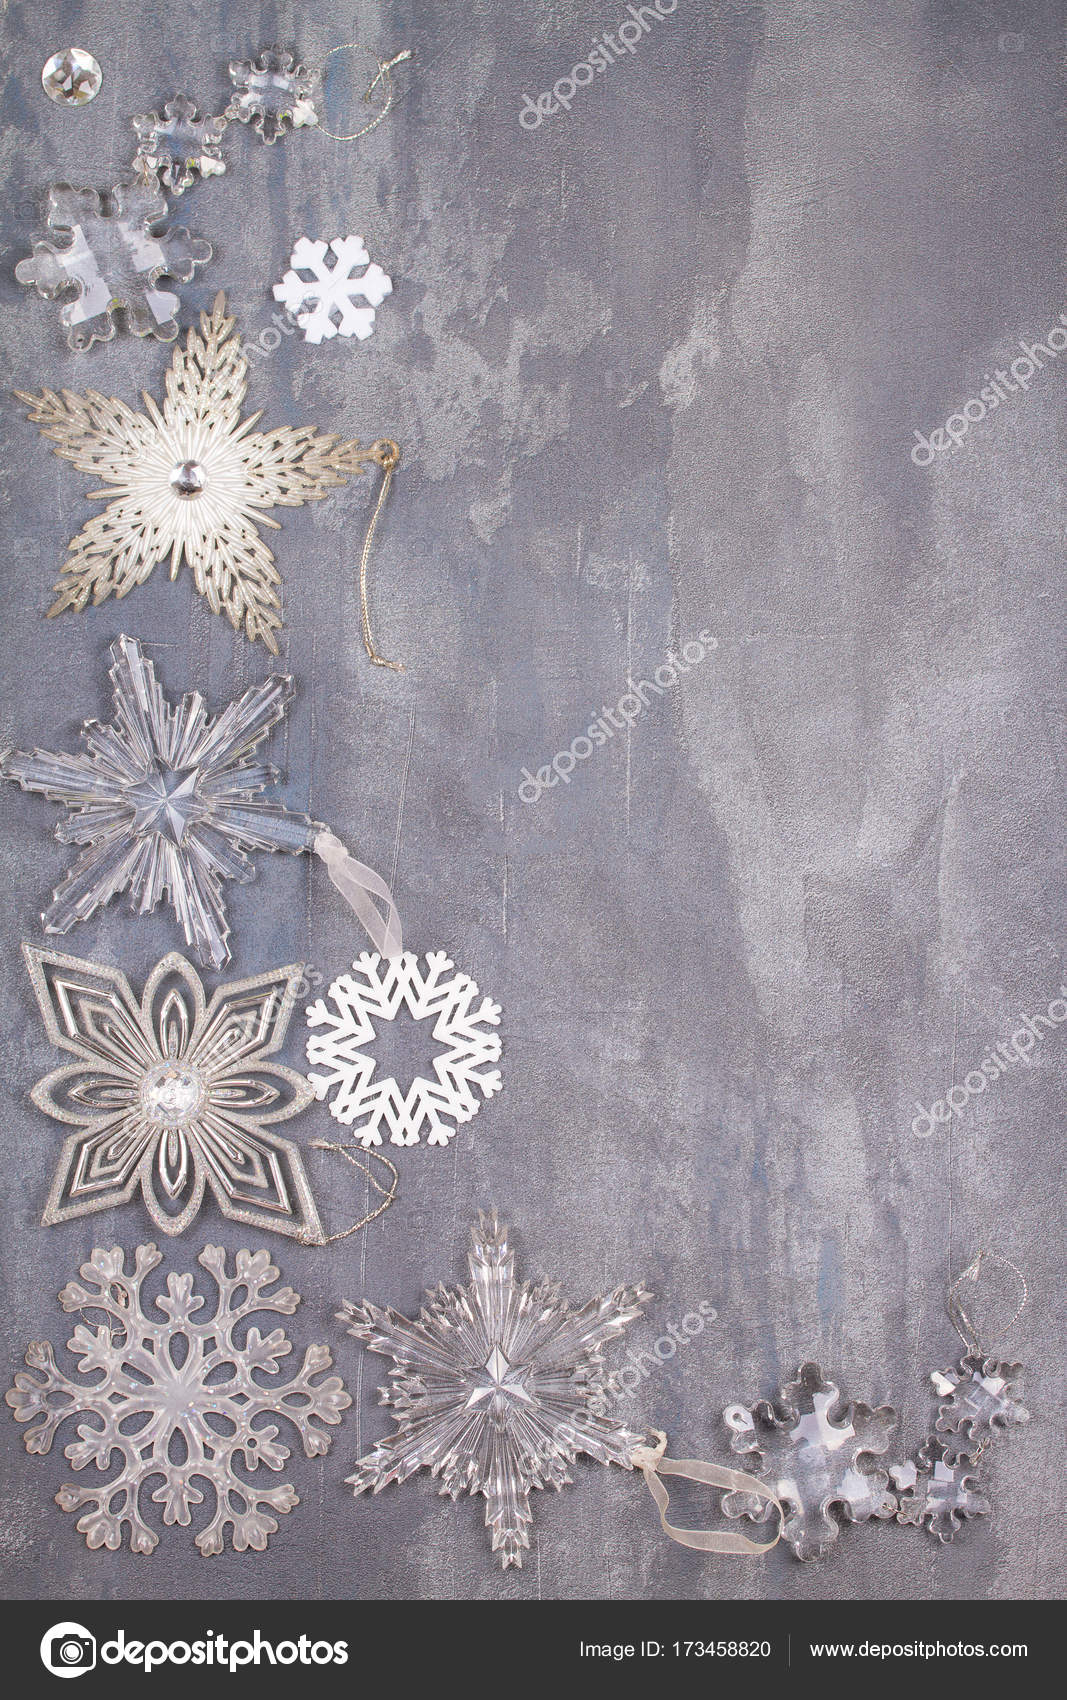 christmas and new year snowflakes border or frame on gray background winter holidays concept view from above top studio shot vertical photo by